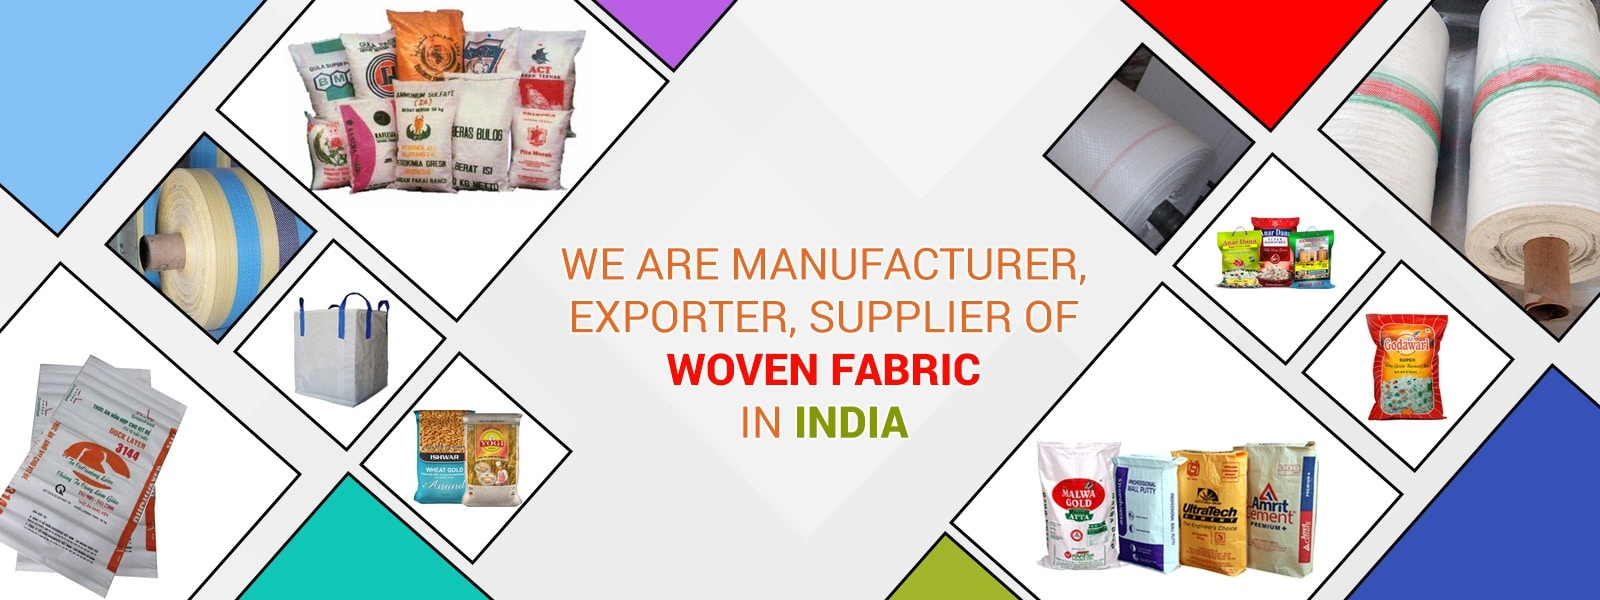 PP HD Woven Sacks, Woven-Fabric-Manufacturers